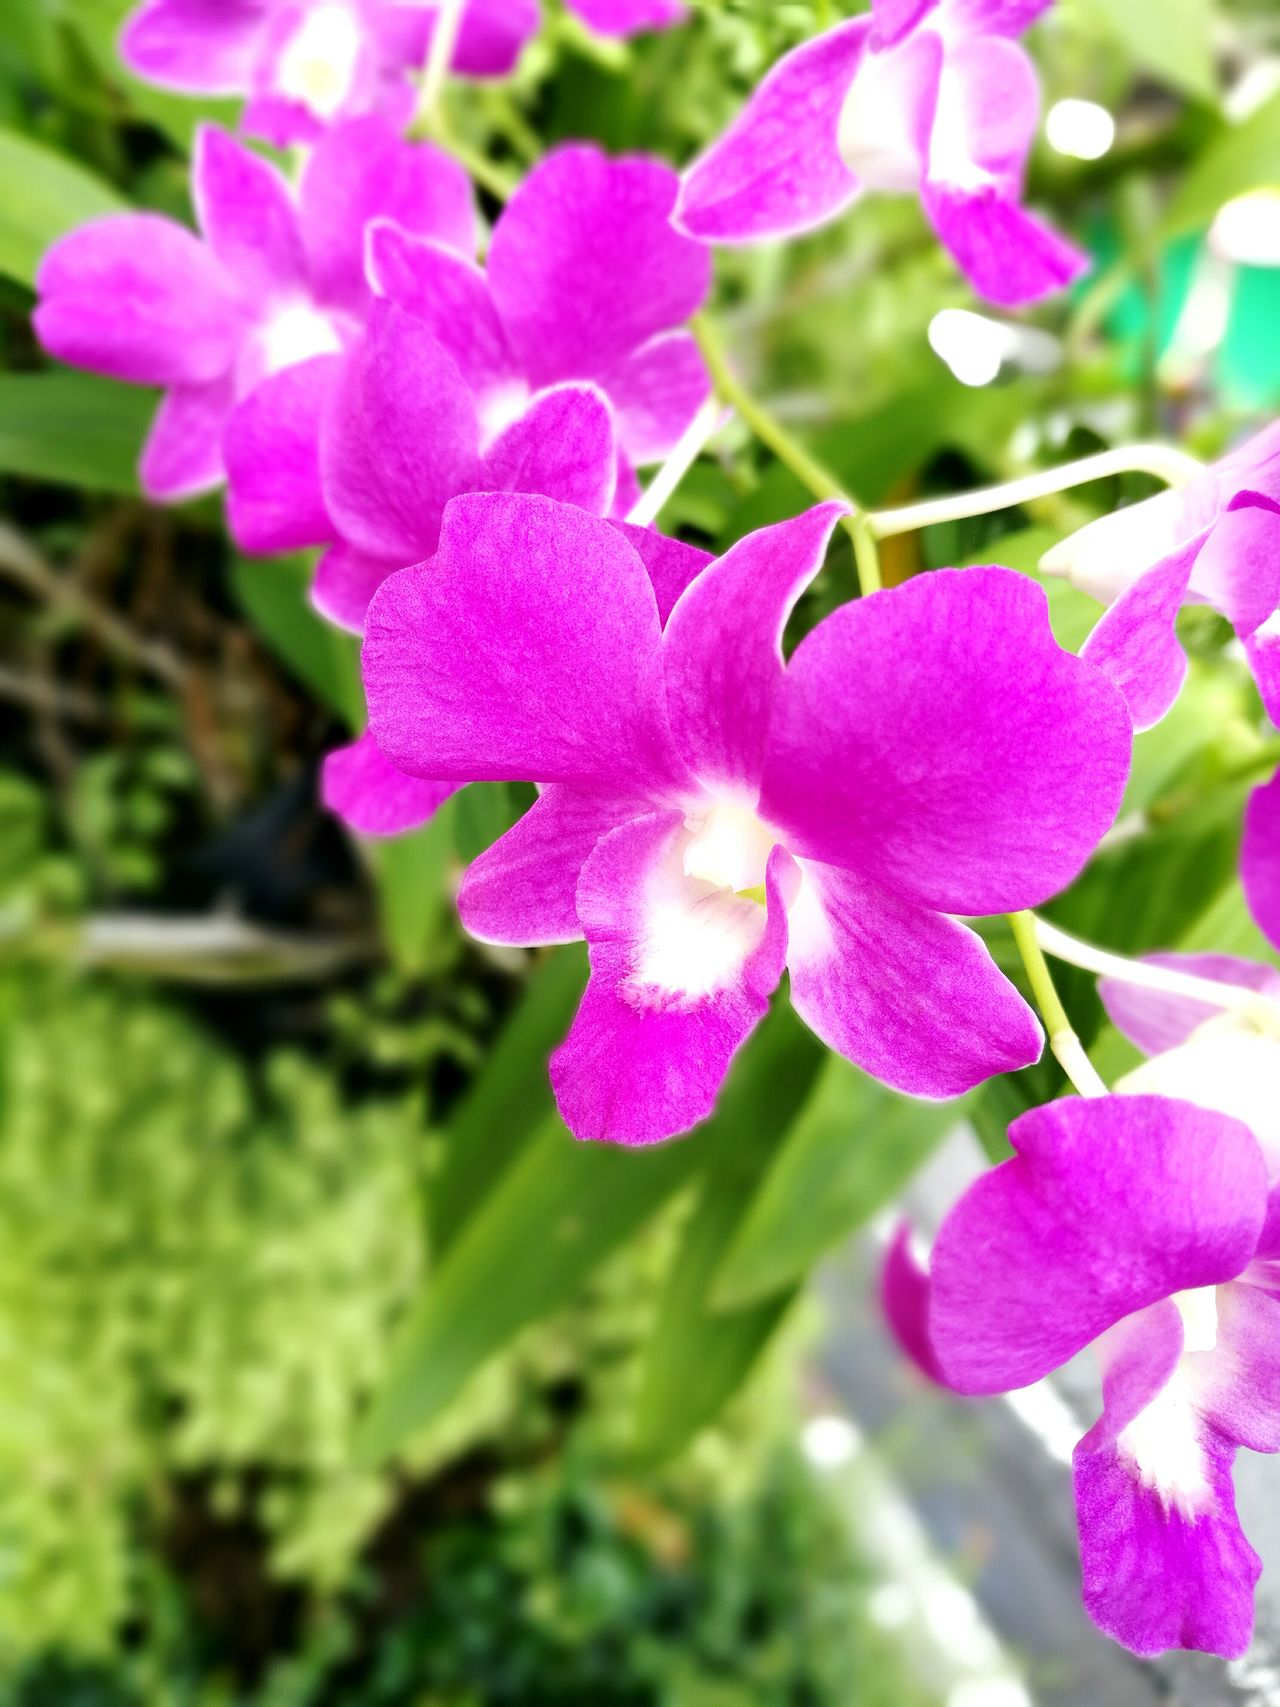 Orchids. Naturephotography Orchids Collection Orchidslover Orchids Garden Orchids Orchid Blossoms Orchid Flower